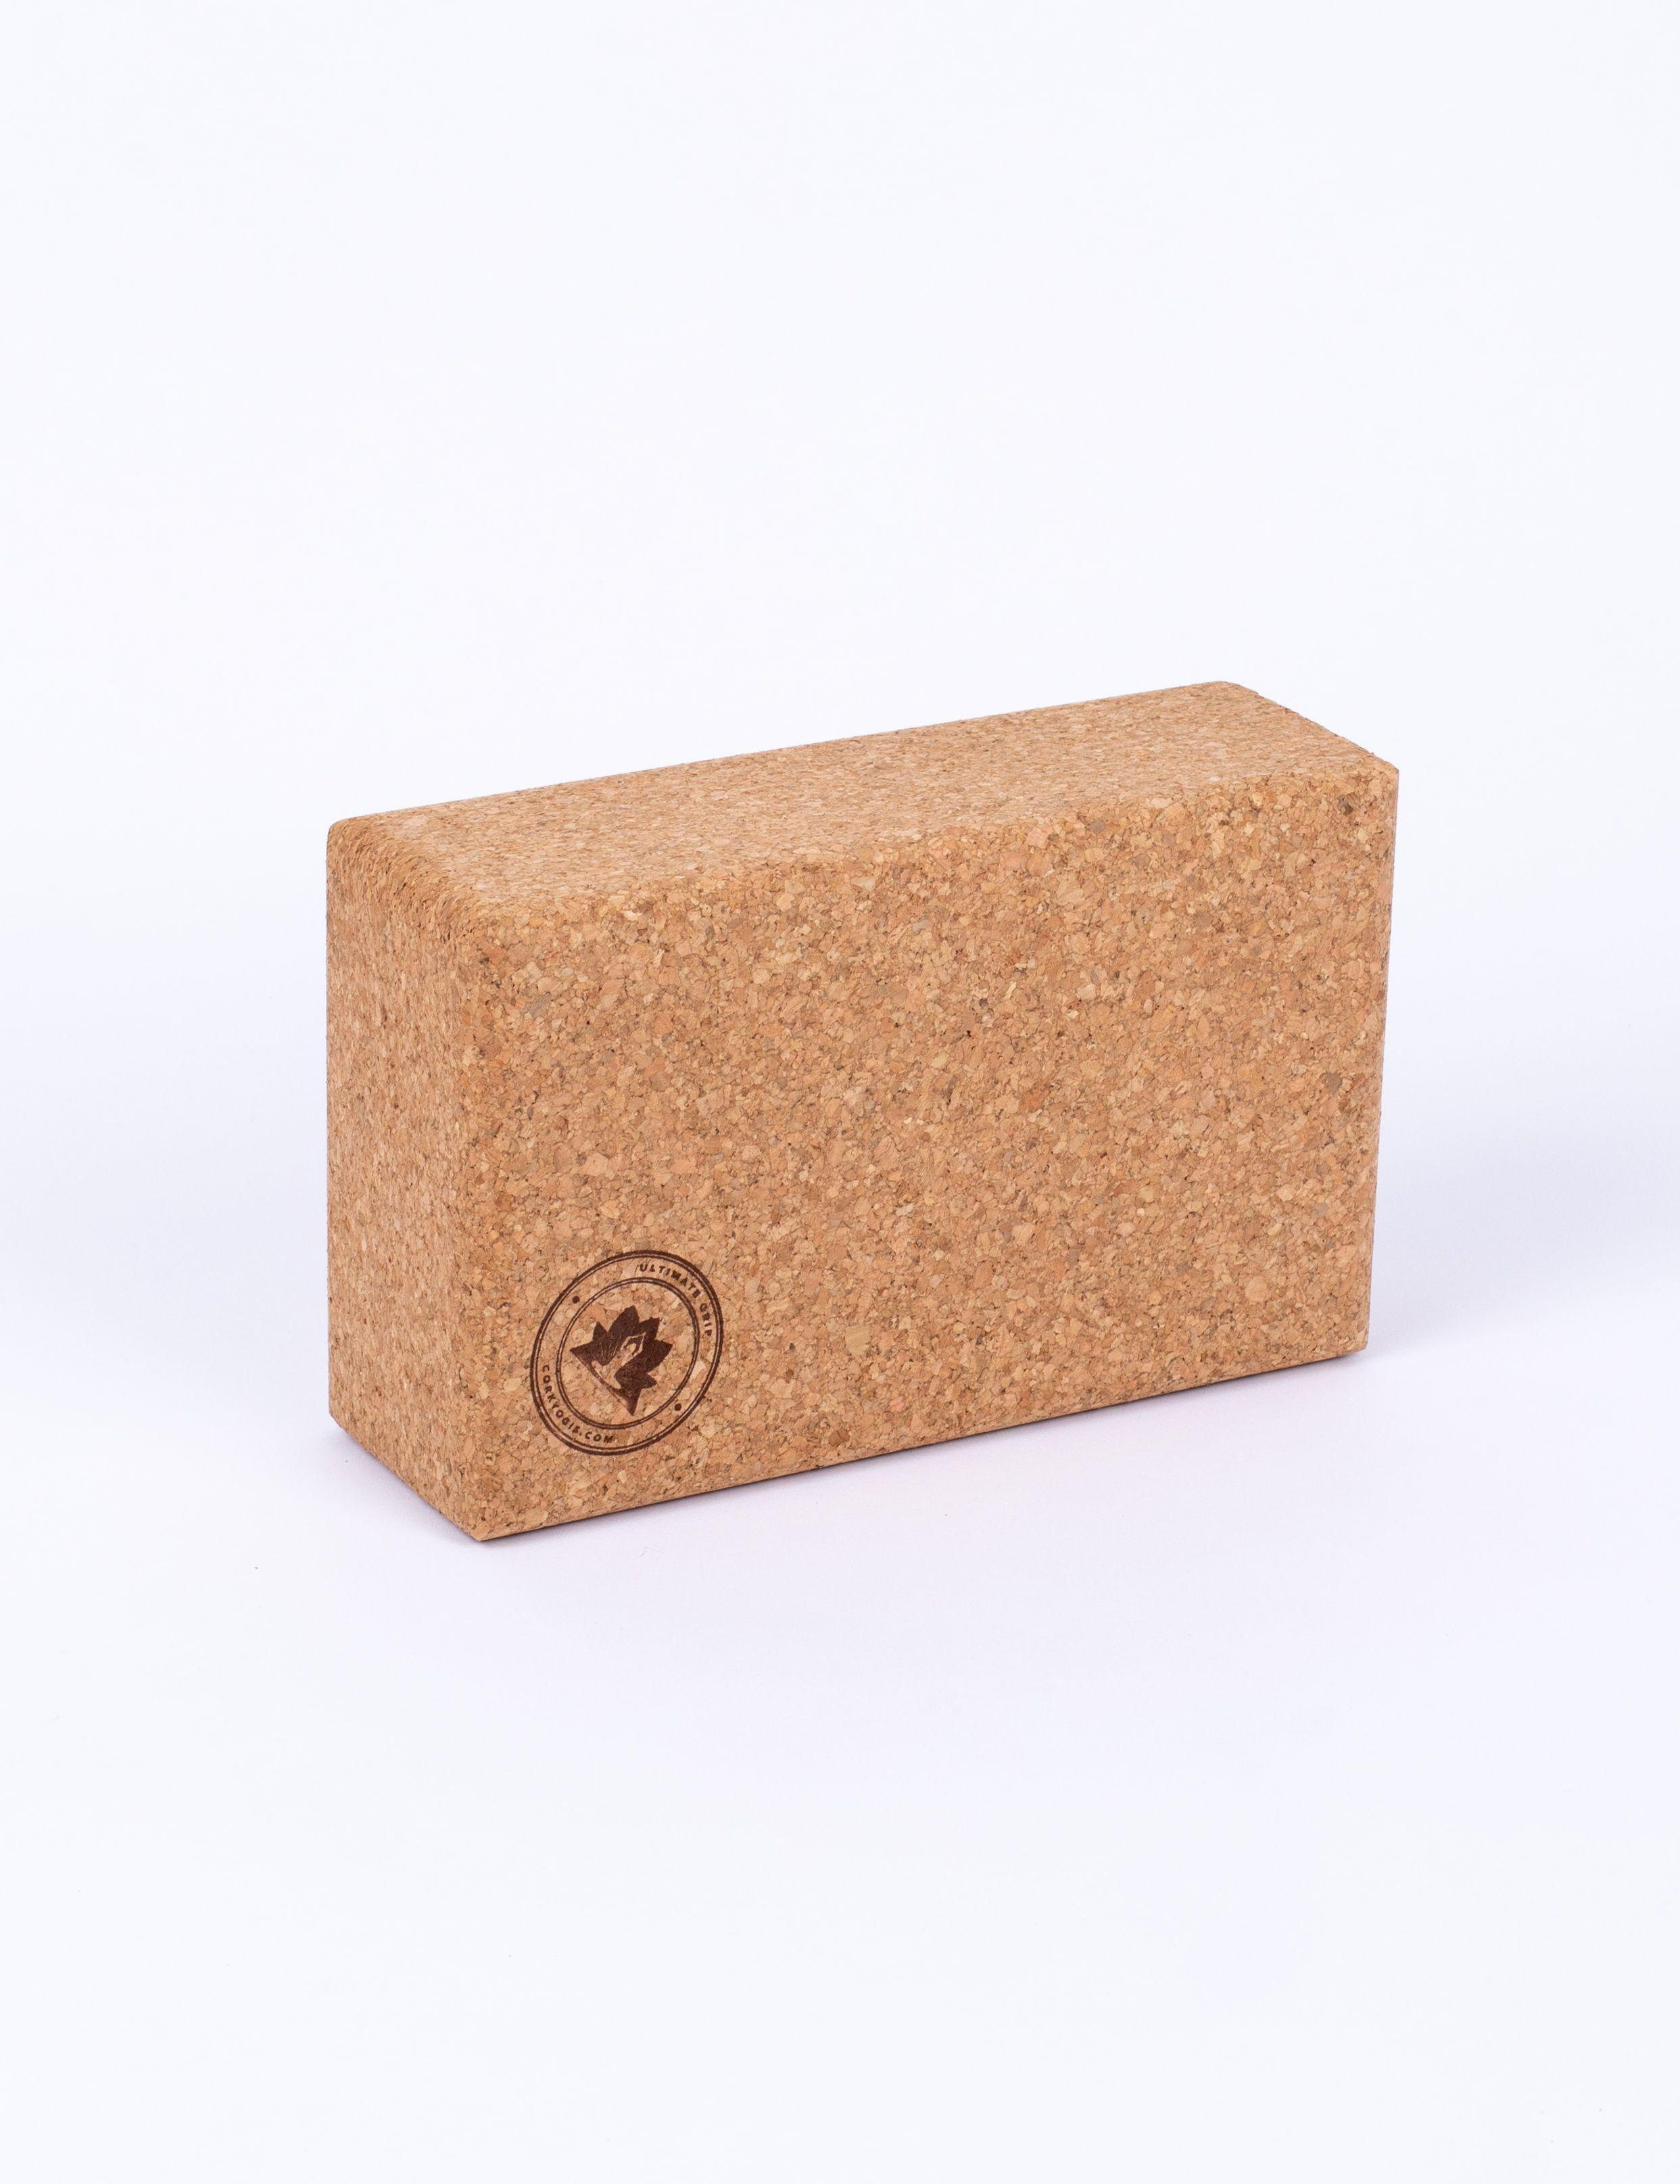 Cork eco friendly mat and block